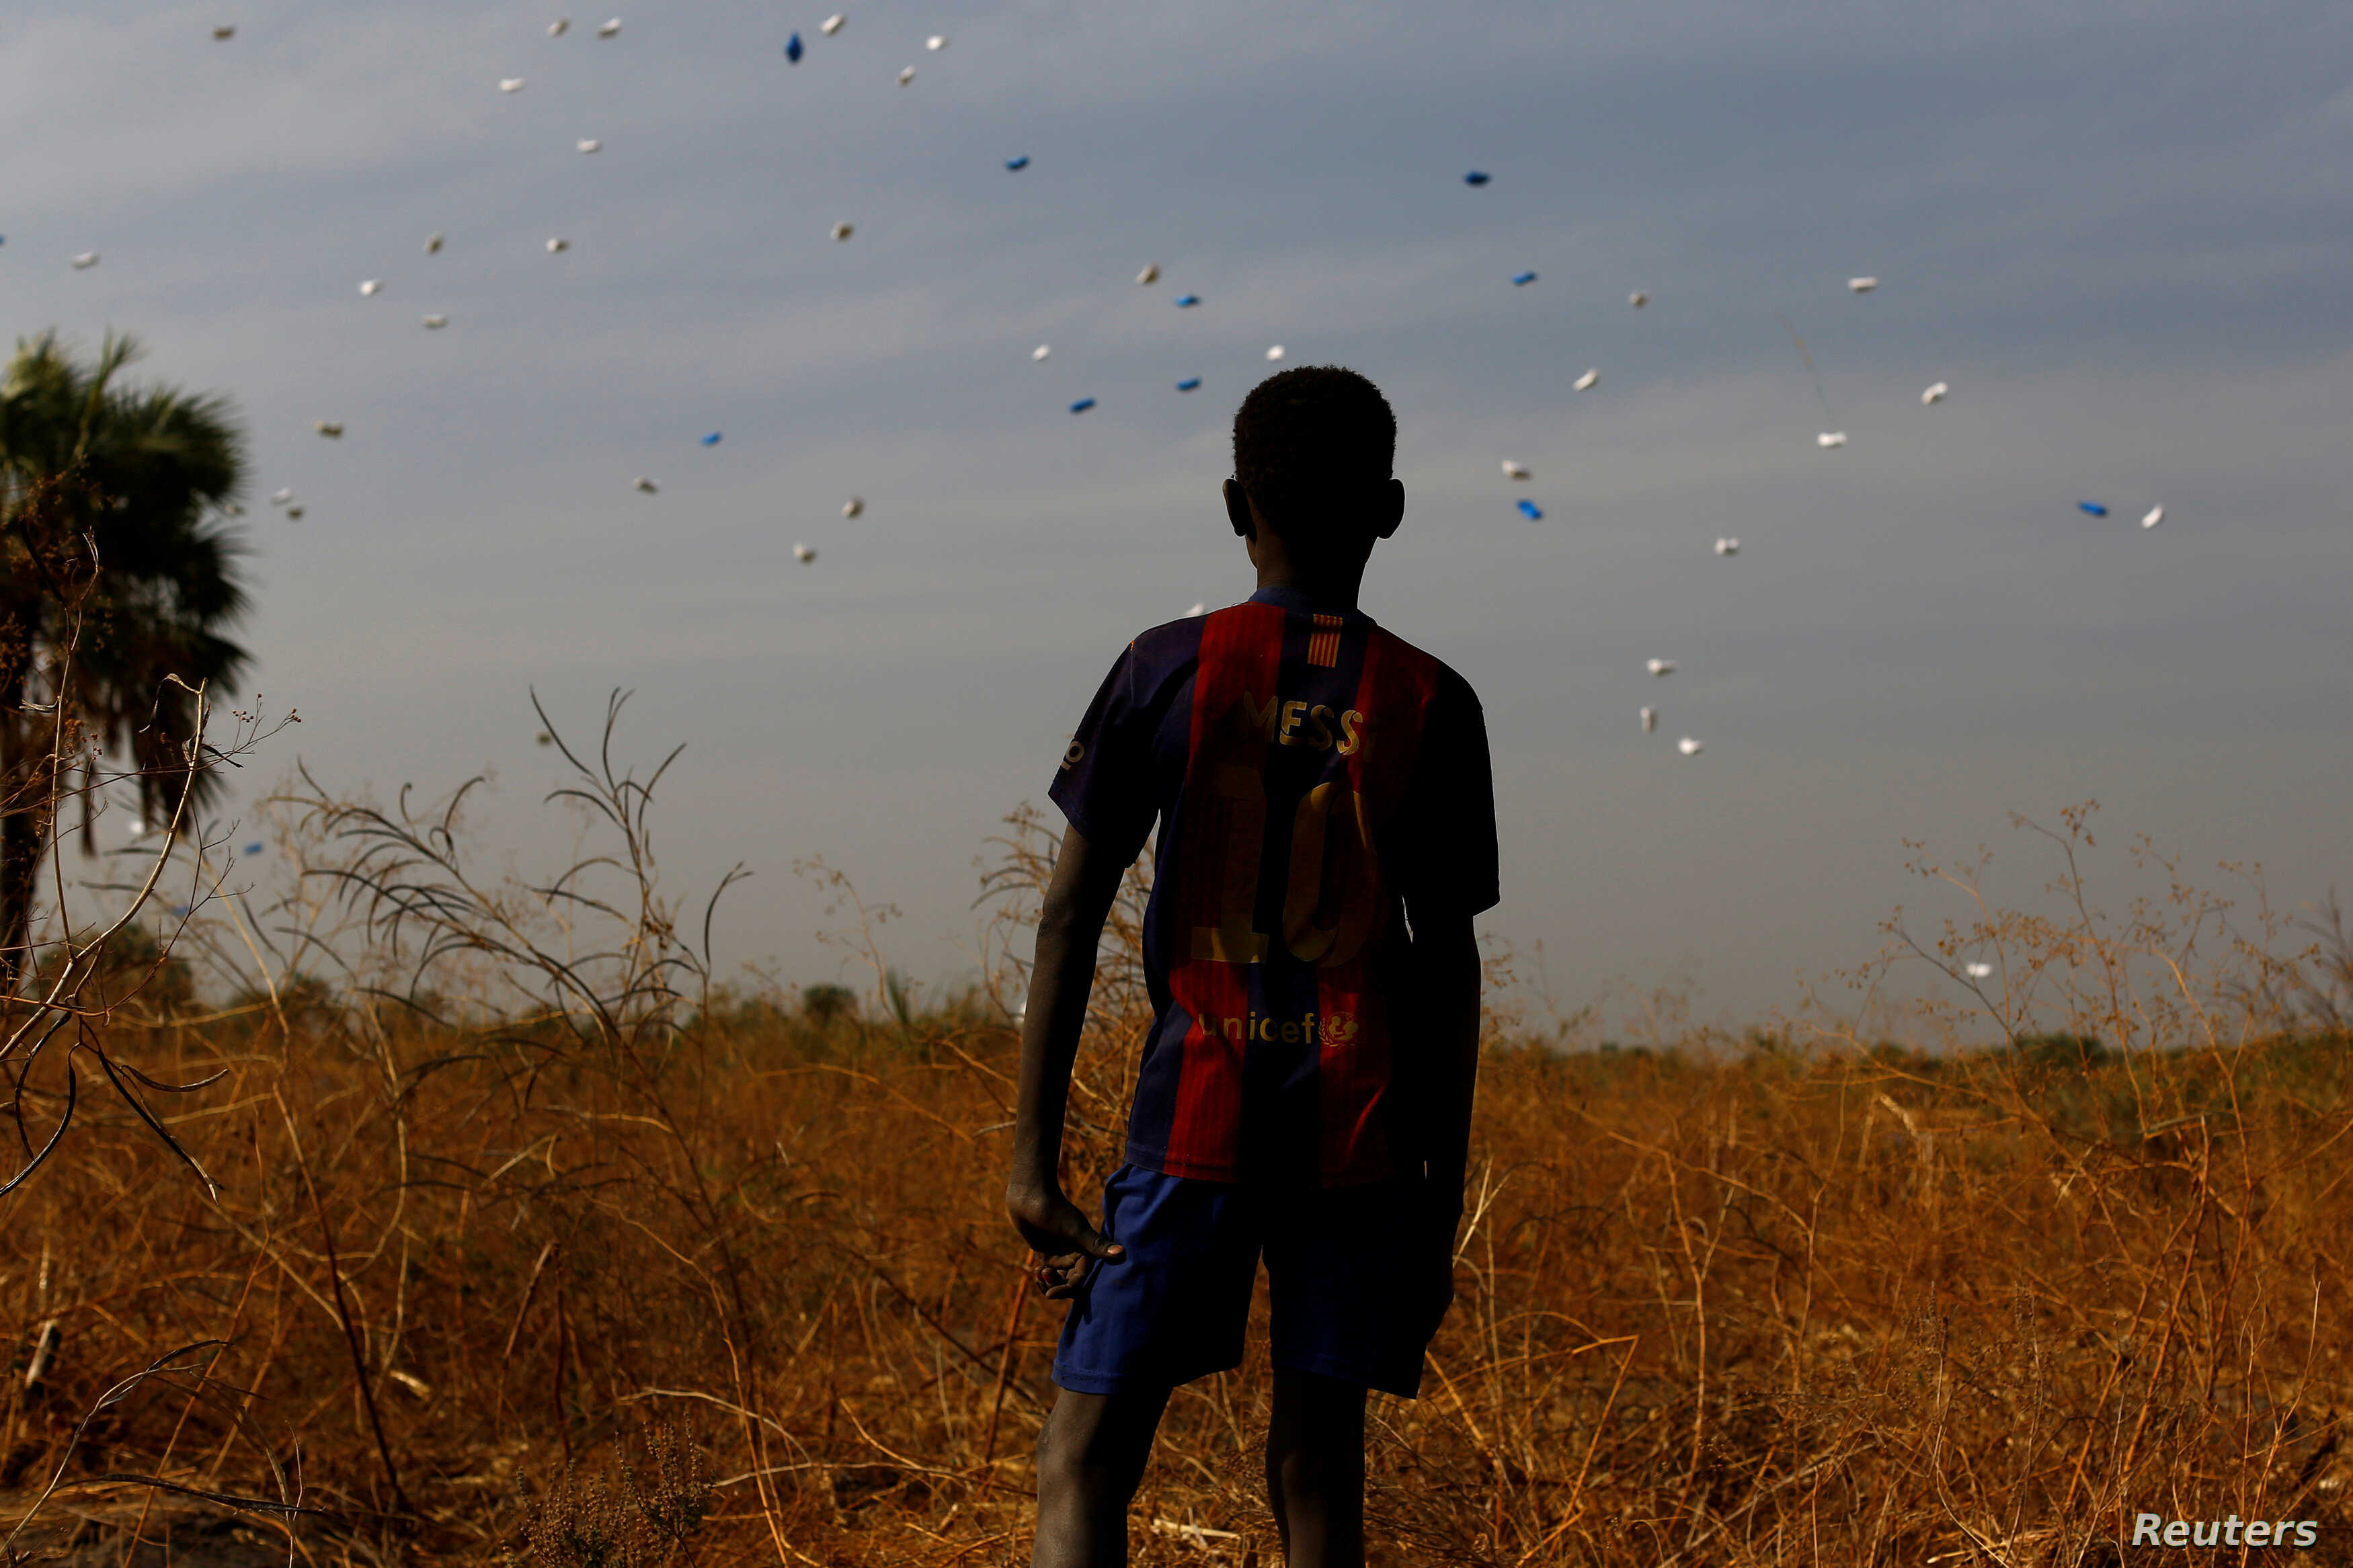 A boy watches sacks of food drop to the ground during a United Nations World Food Program airdrop close to Rubkuai, South Sudan, Feb. 18, 2017.